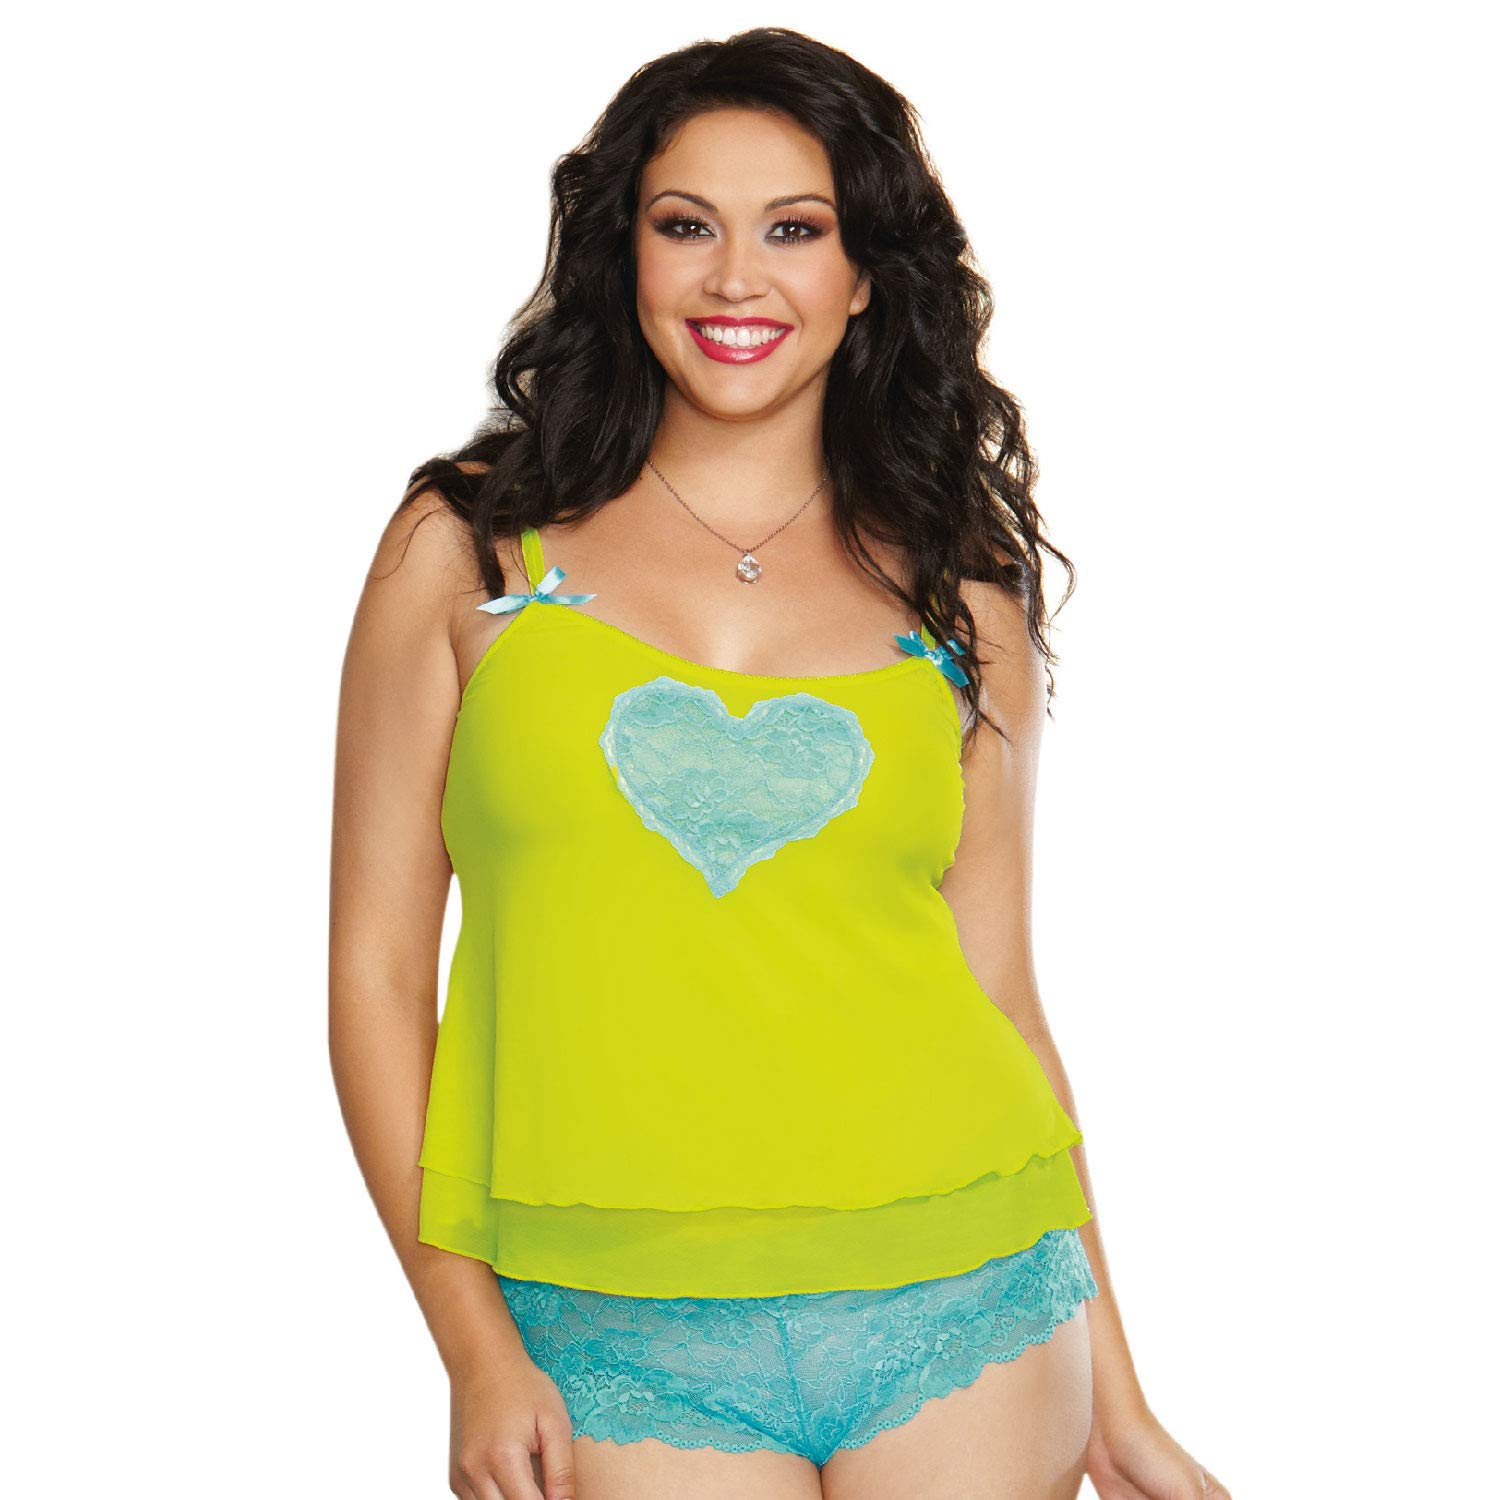 7eff03a69ed Amazon.com  Dreamgirl Women s Plus-Size Sheer Stretch Mesh Camisole   Clothing